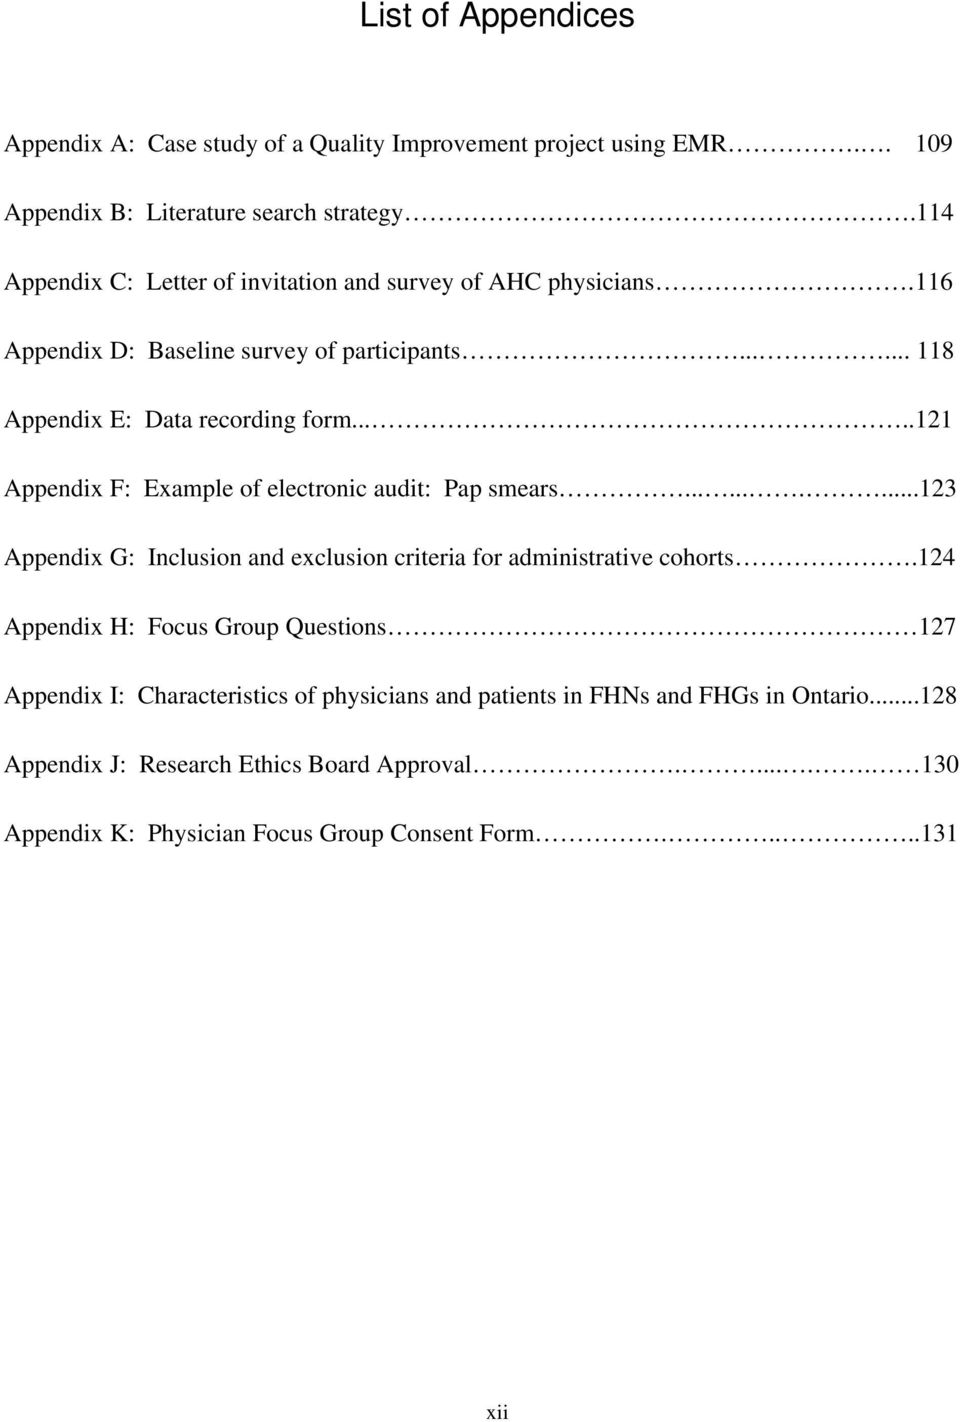 ....121 Appendix F: Example of electronic audit: Pap smears..........123 Appendix G: Inclusion and exclusion criteria for administrative cohorts.